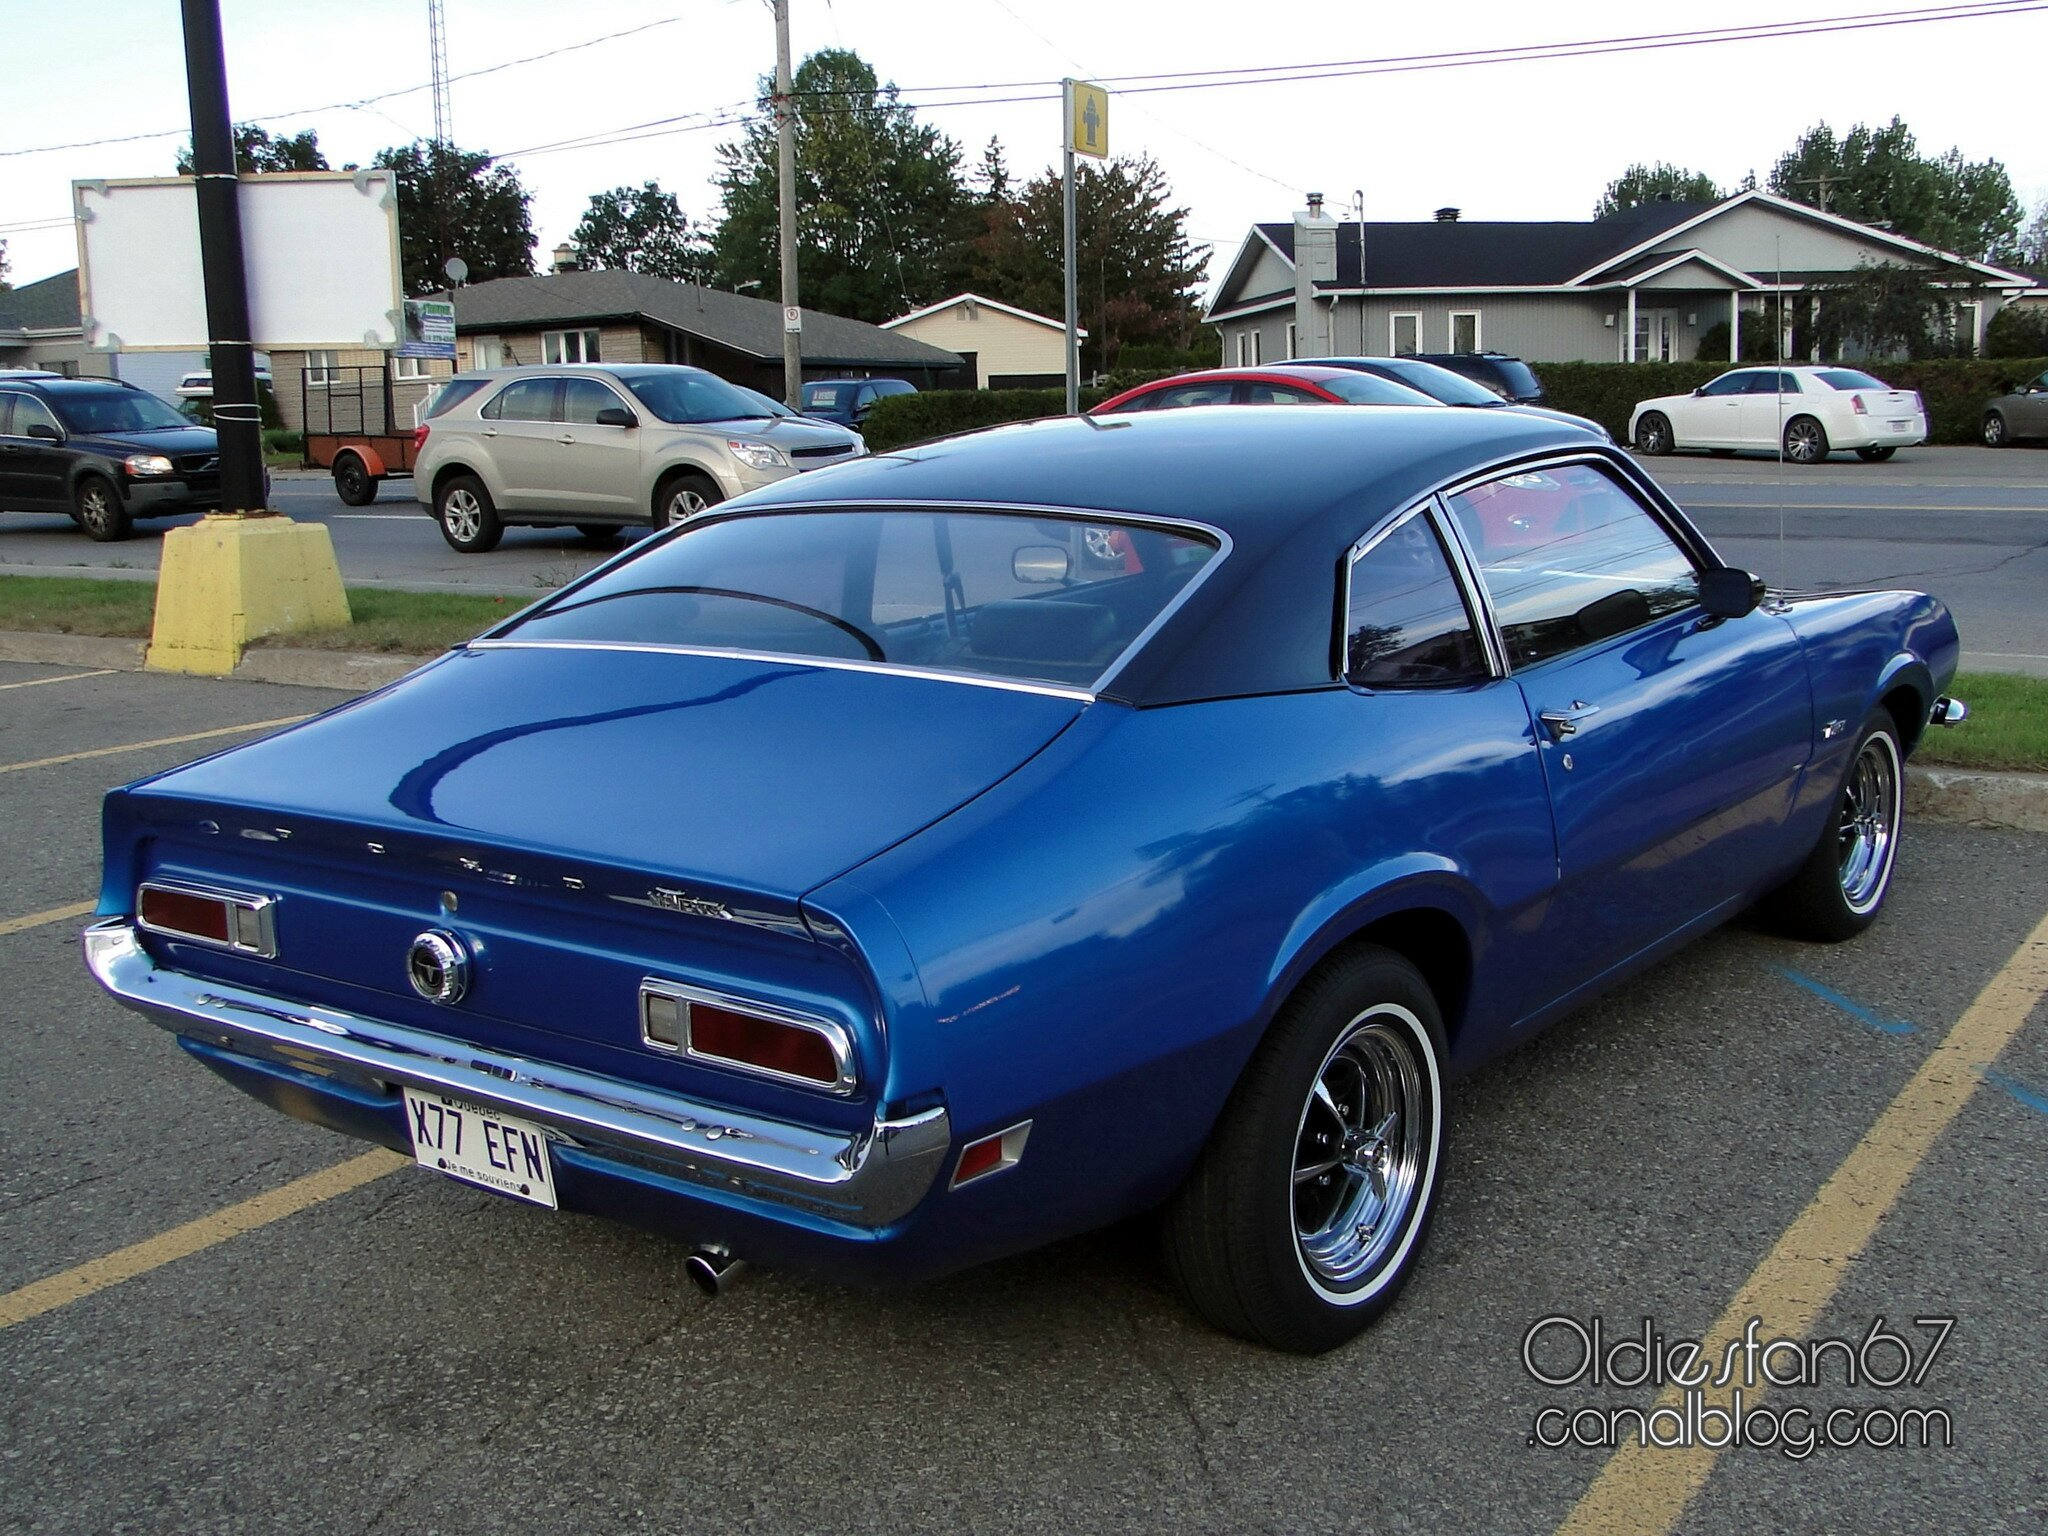 Ford Maverick 2door Fastback Sedan 1970 1972 Oldiesfan67